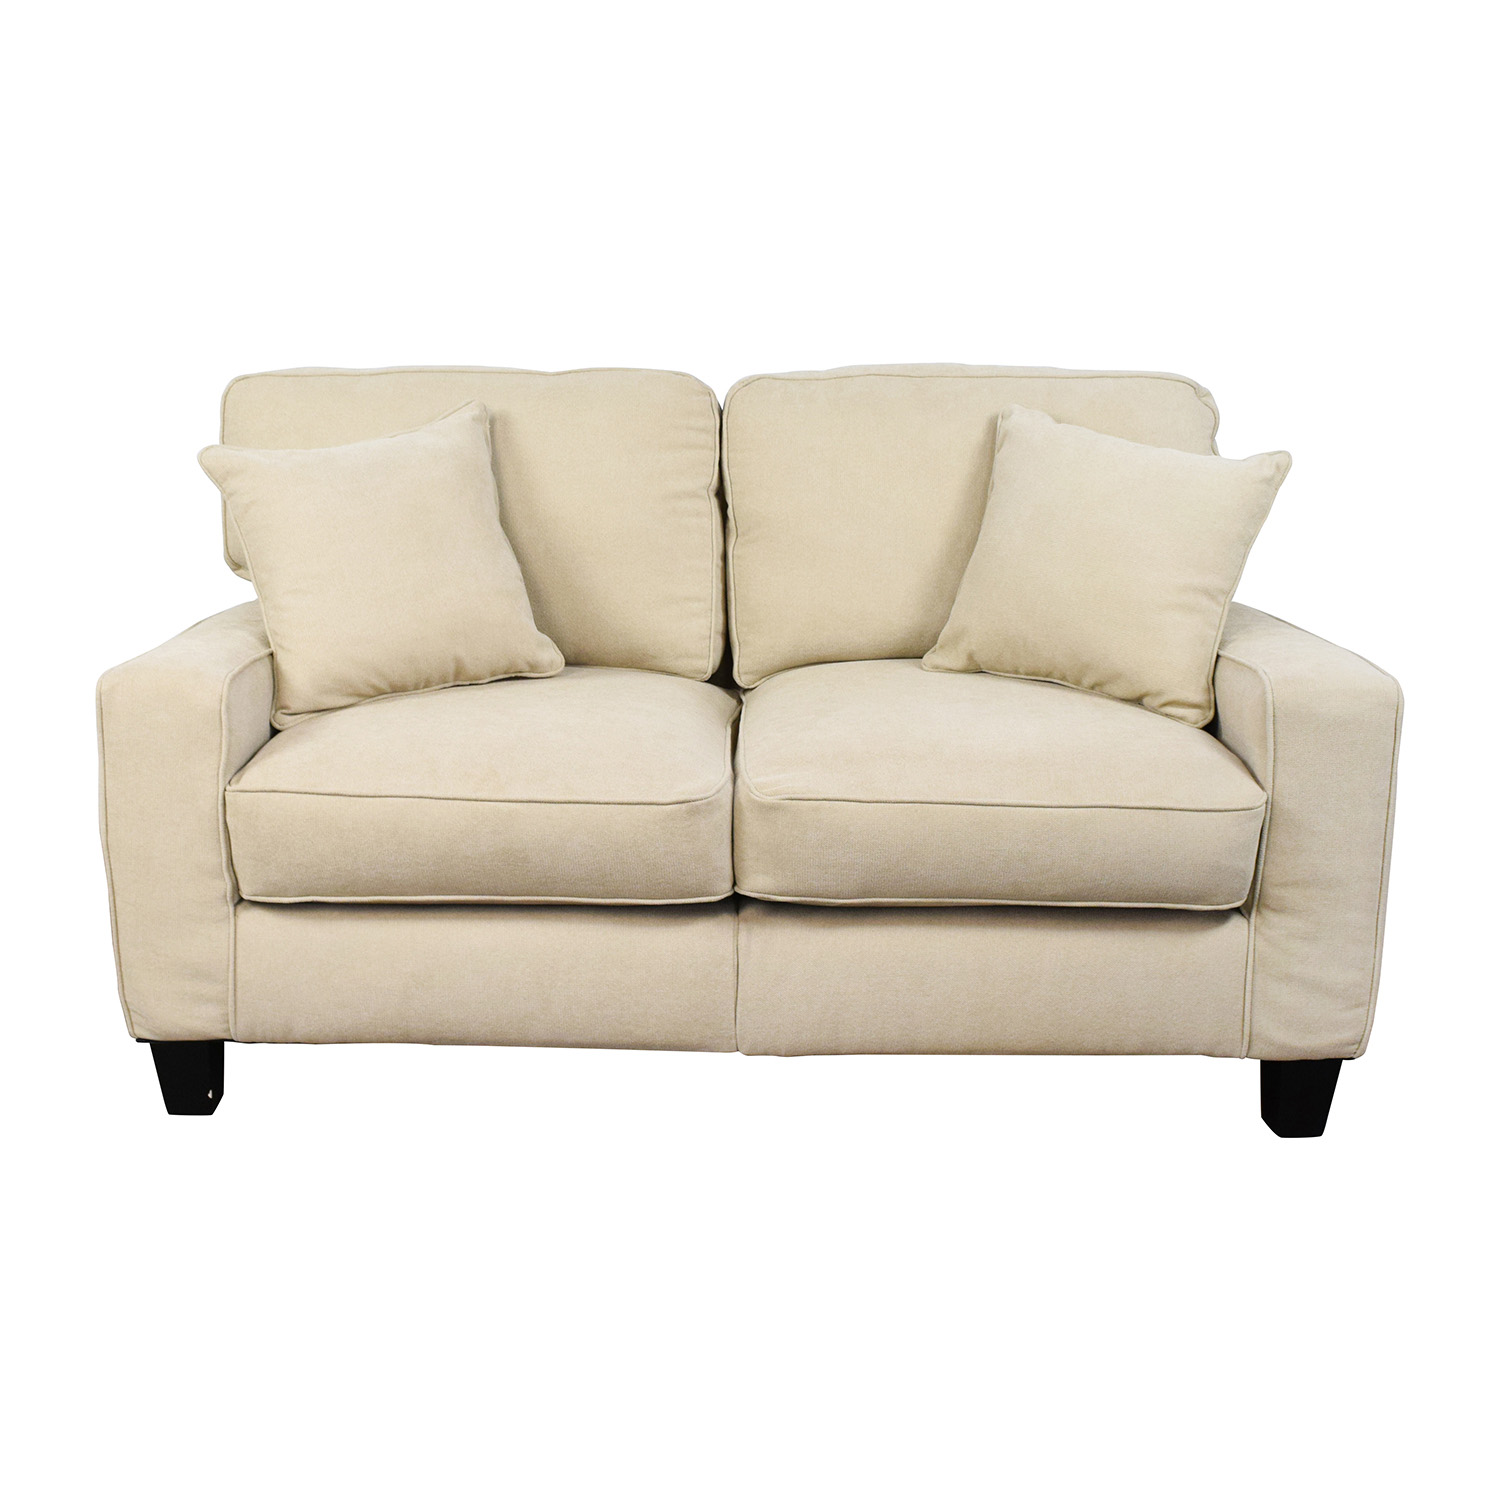 Sofa In Target Sofas Sectionals Target Thesofa